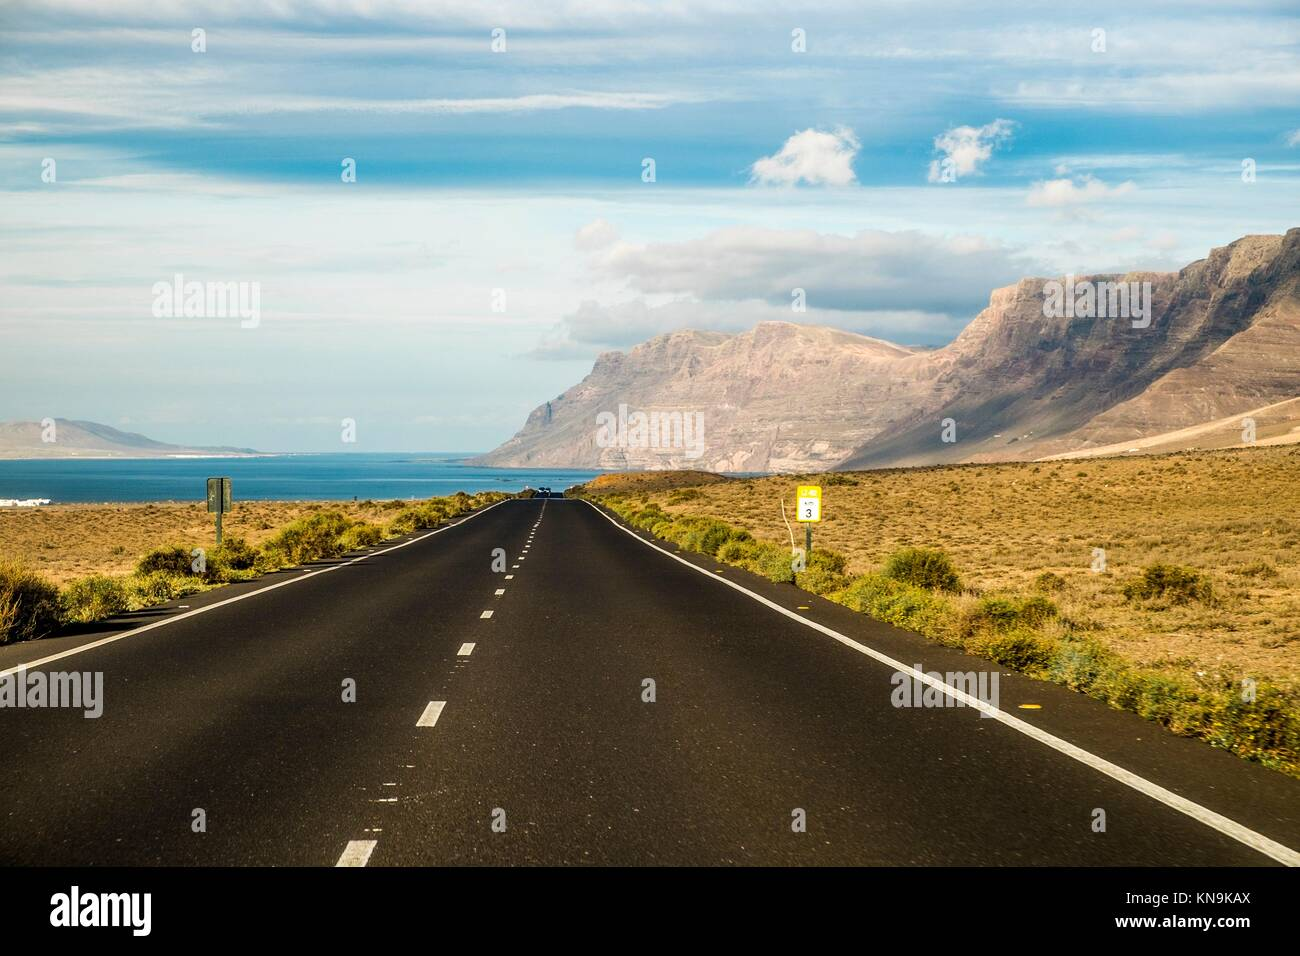 Road in the volcanic area of Lanzarote, Canary Islands, Spain. - Stock Image